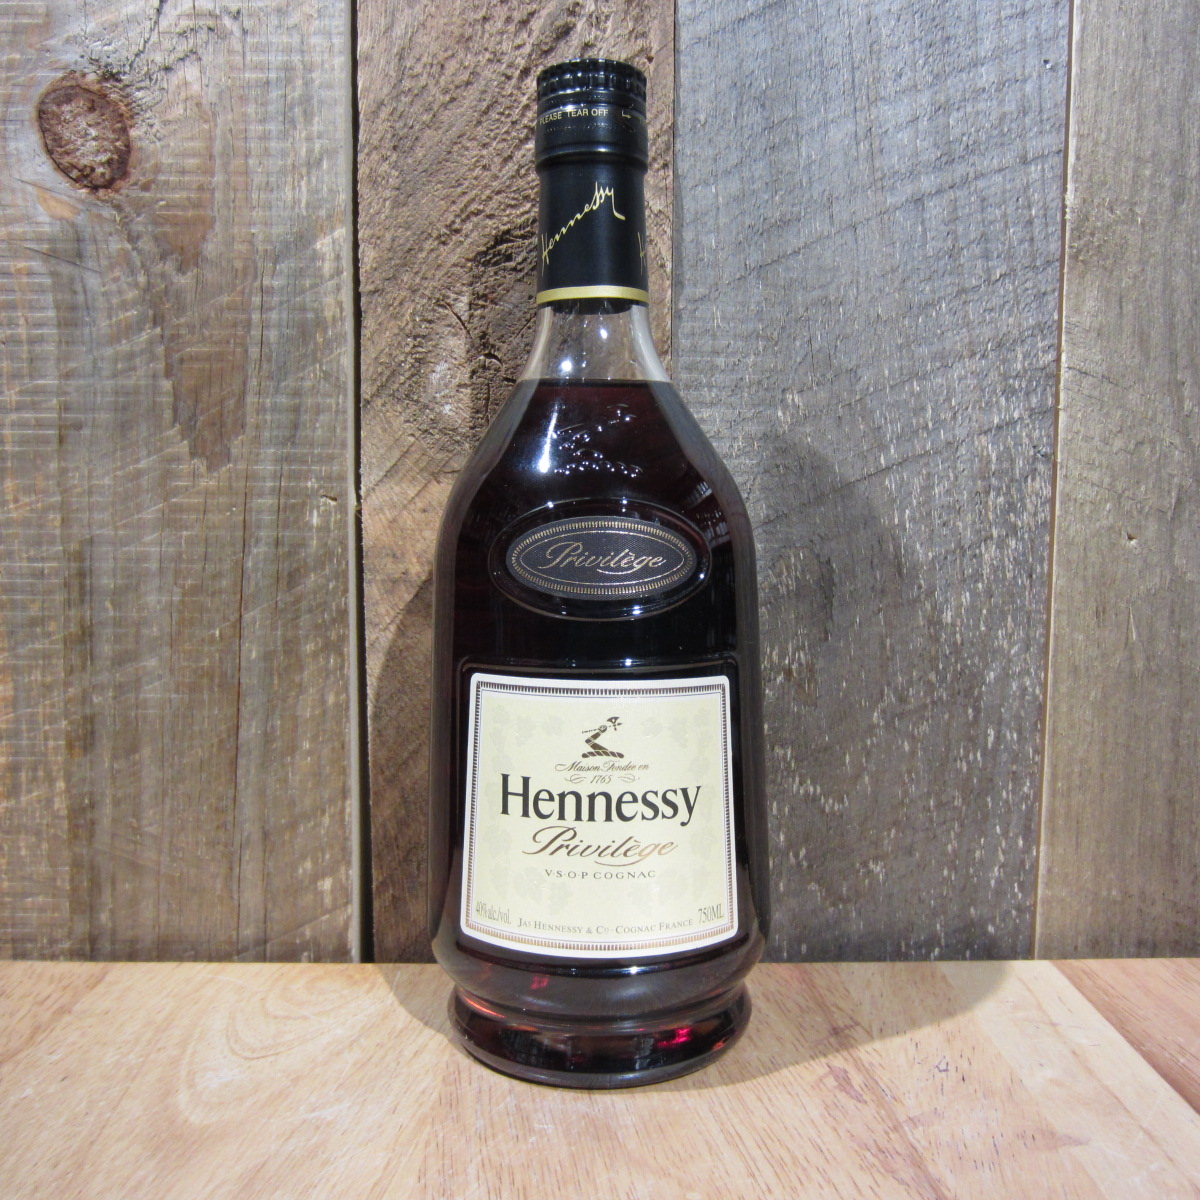 hennessy vsop privilege 750ml oak and barrel. Black Bedroom Furniture Sets. Home Design Ideas